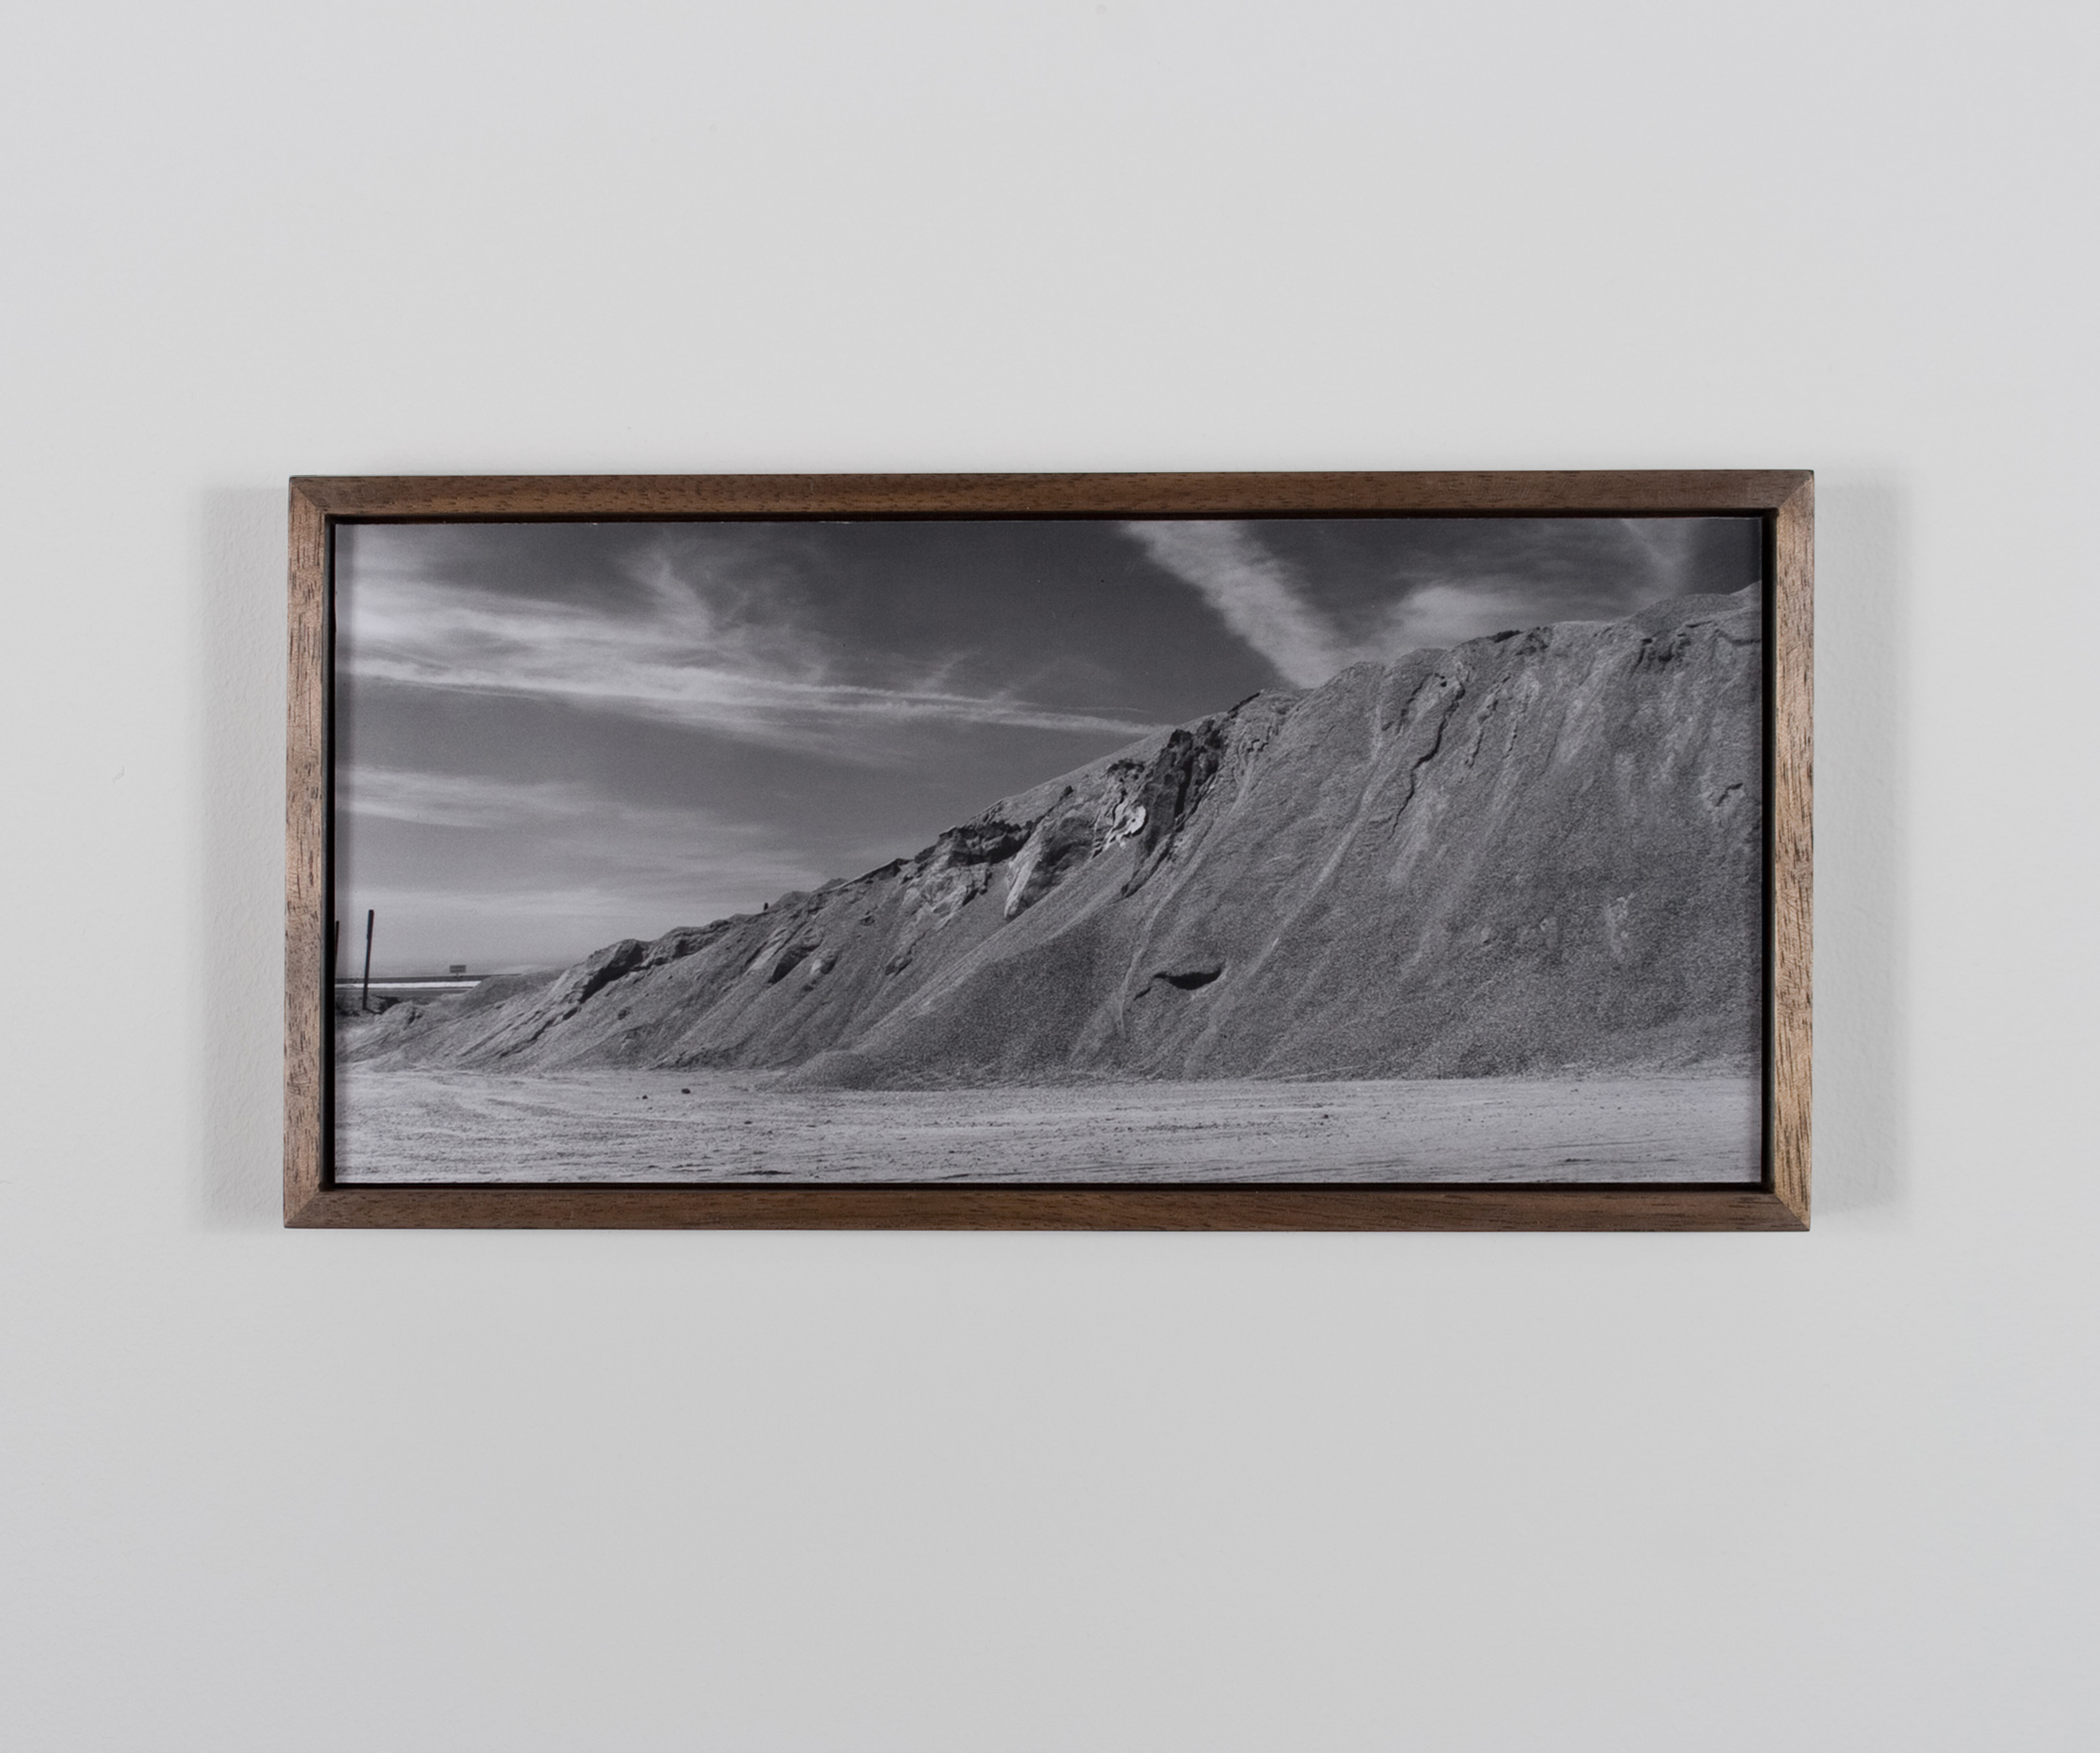 Clavicle Mountain 2009/10 Gelatin-silver print on Dibond, with walnut frame